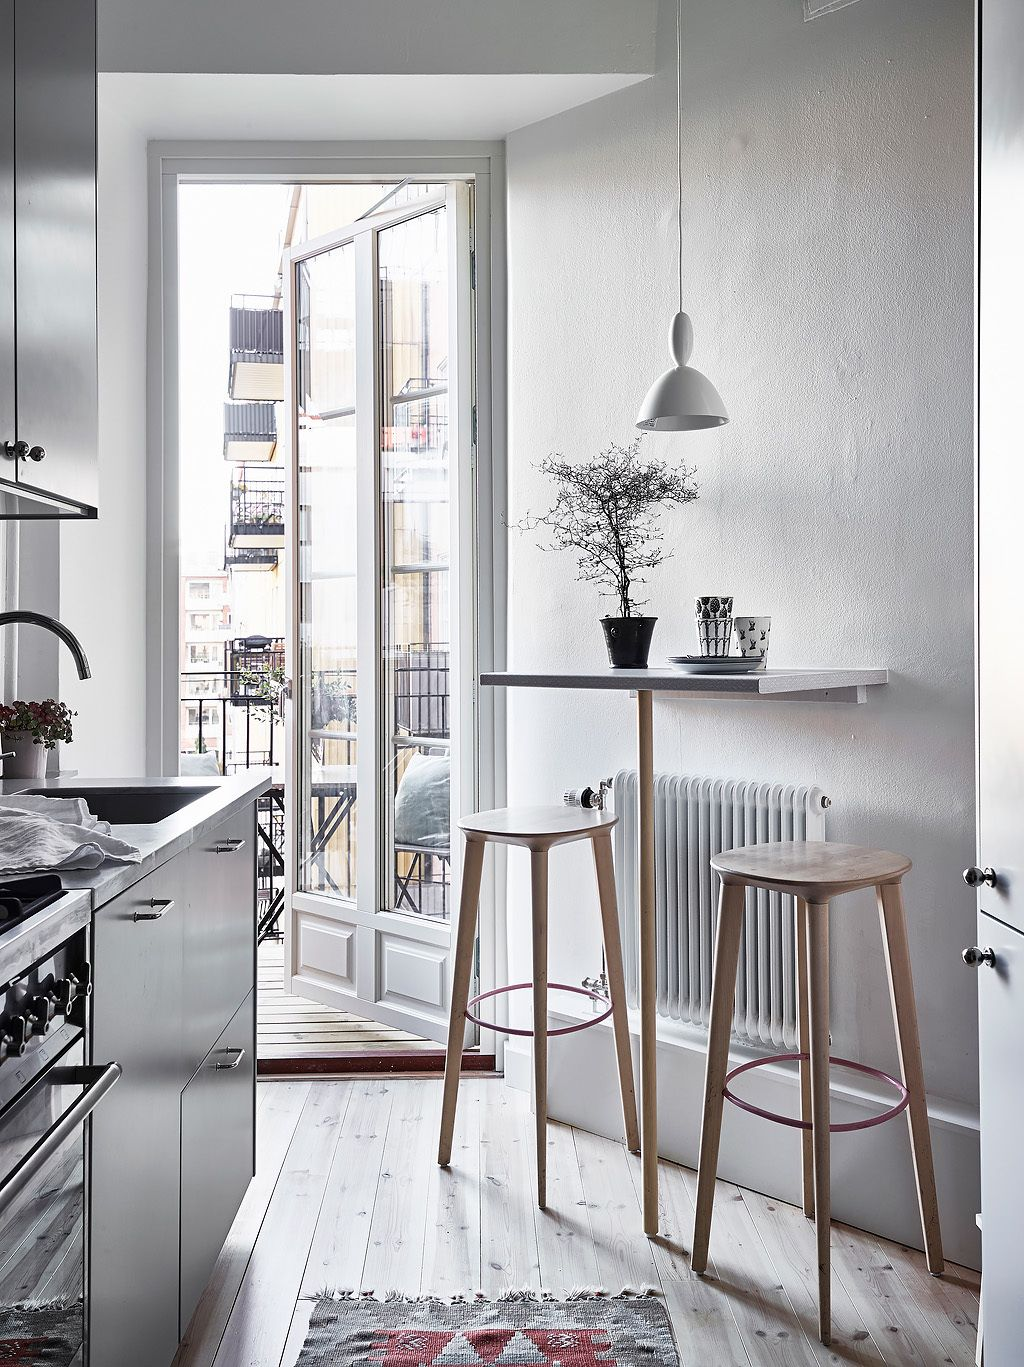 Table Ideas For Small Kitchens Tiny Bar Table For A Small Kitchen Interiors Scandi